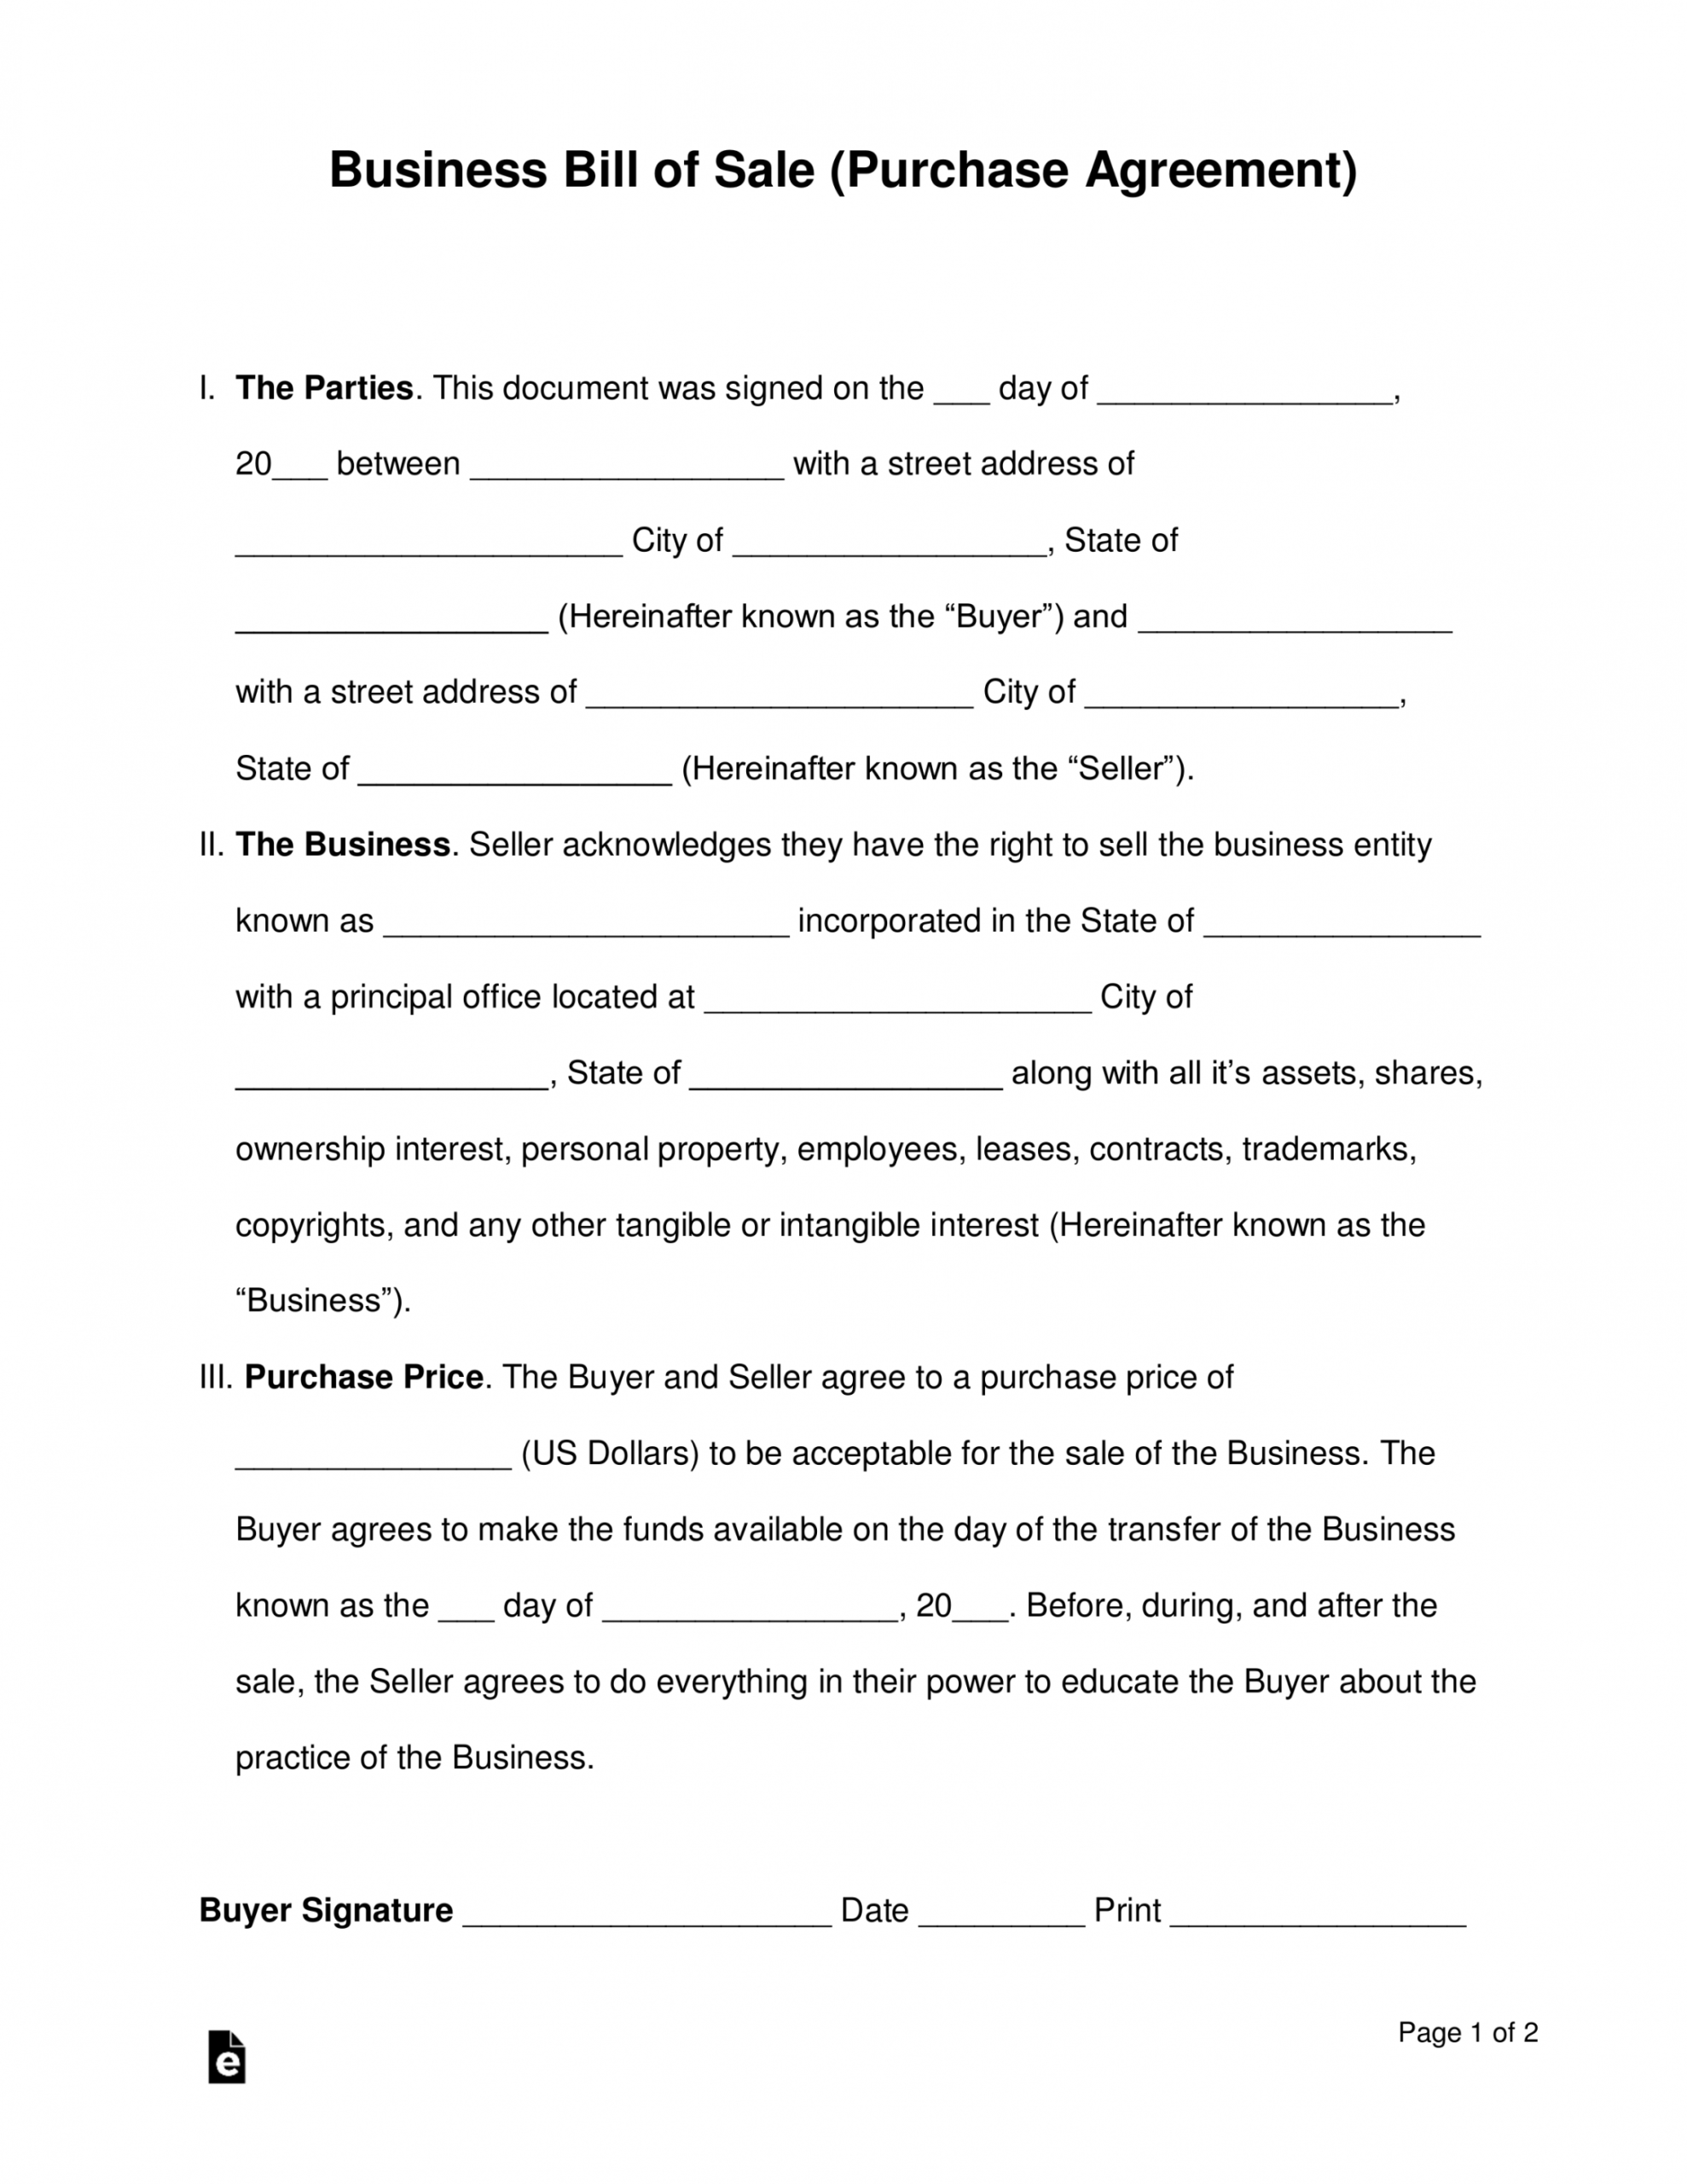 sample free business bill of sale form purchase agreement  word business ownership agreement template excel